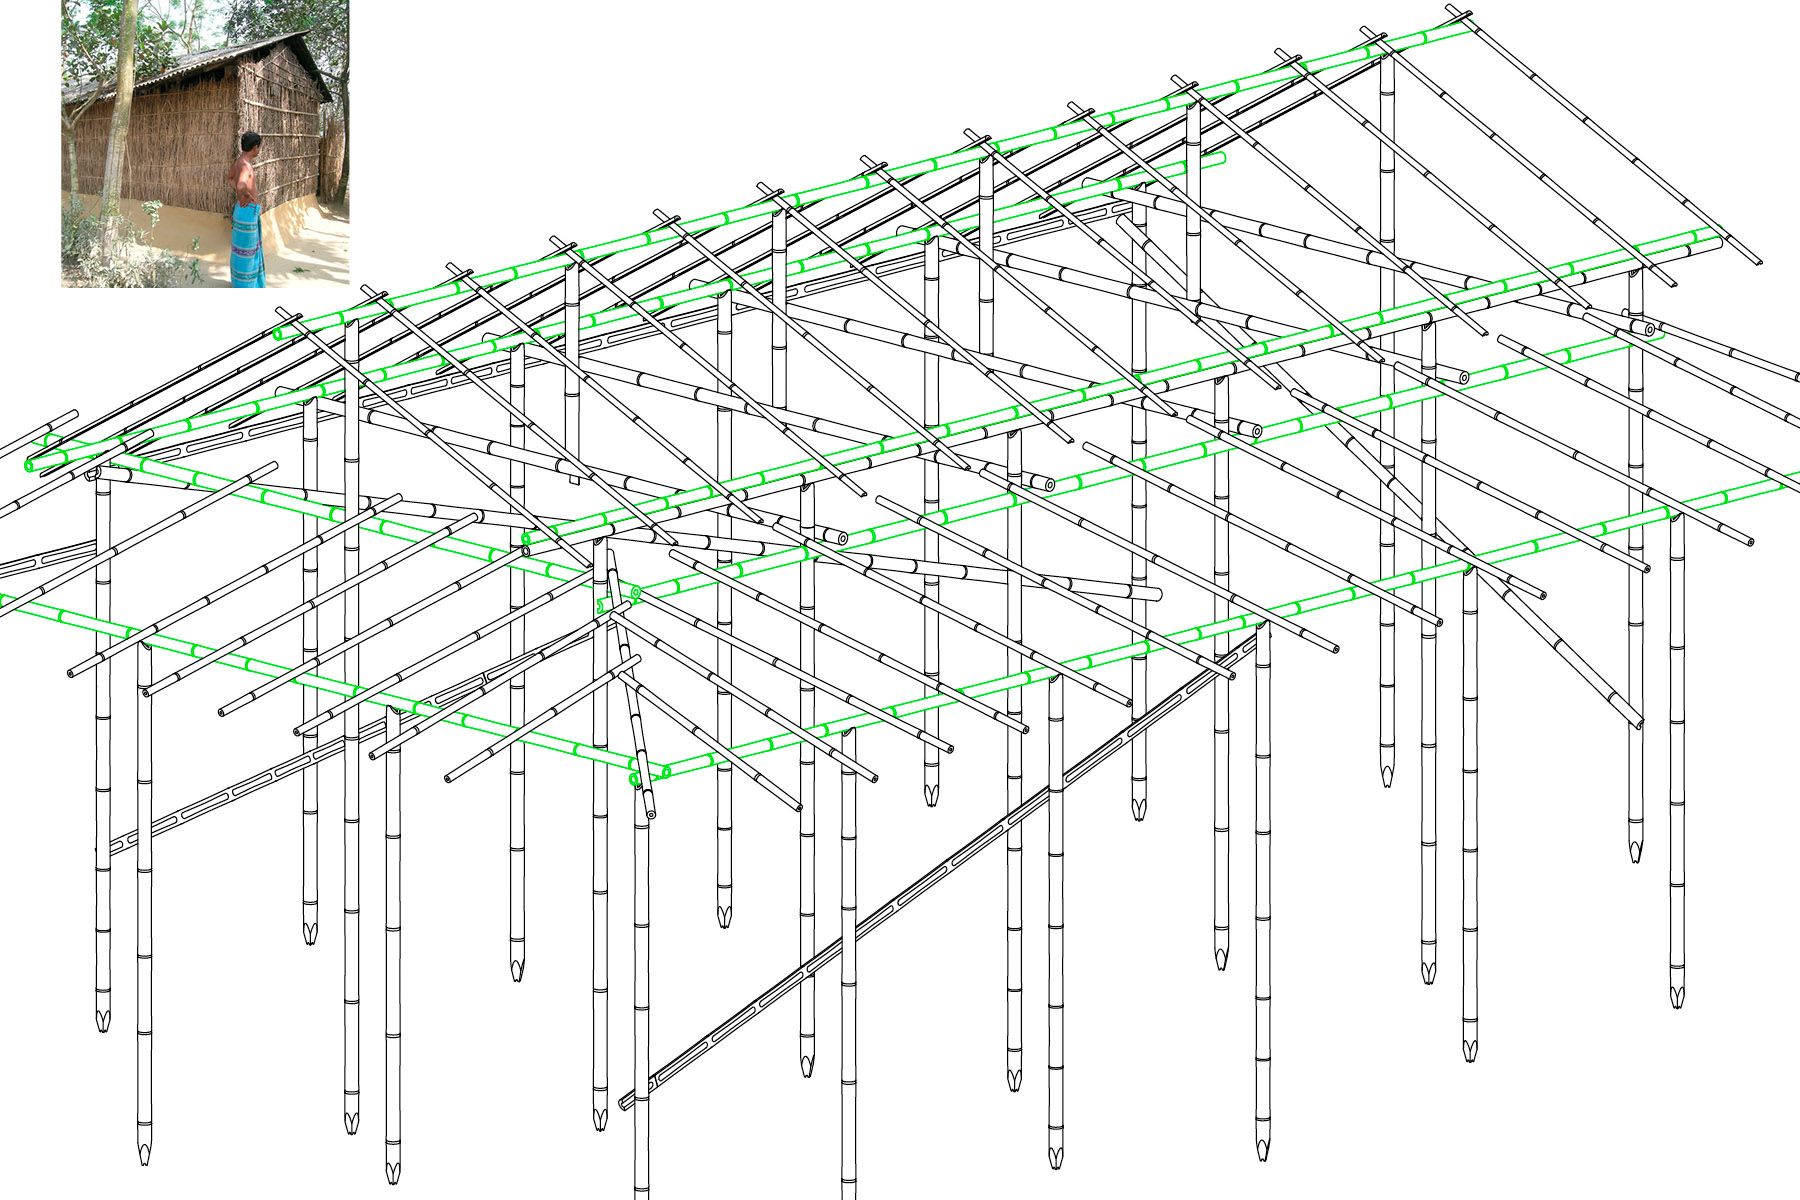 Structure of a bamboo house near the Sundarbans